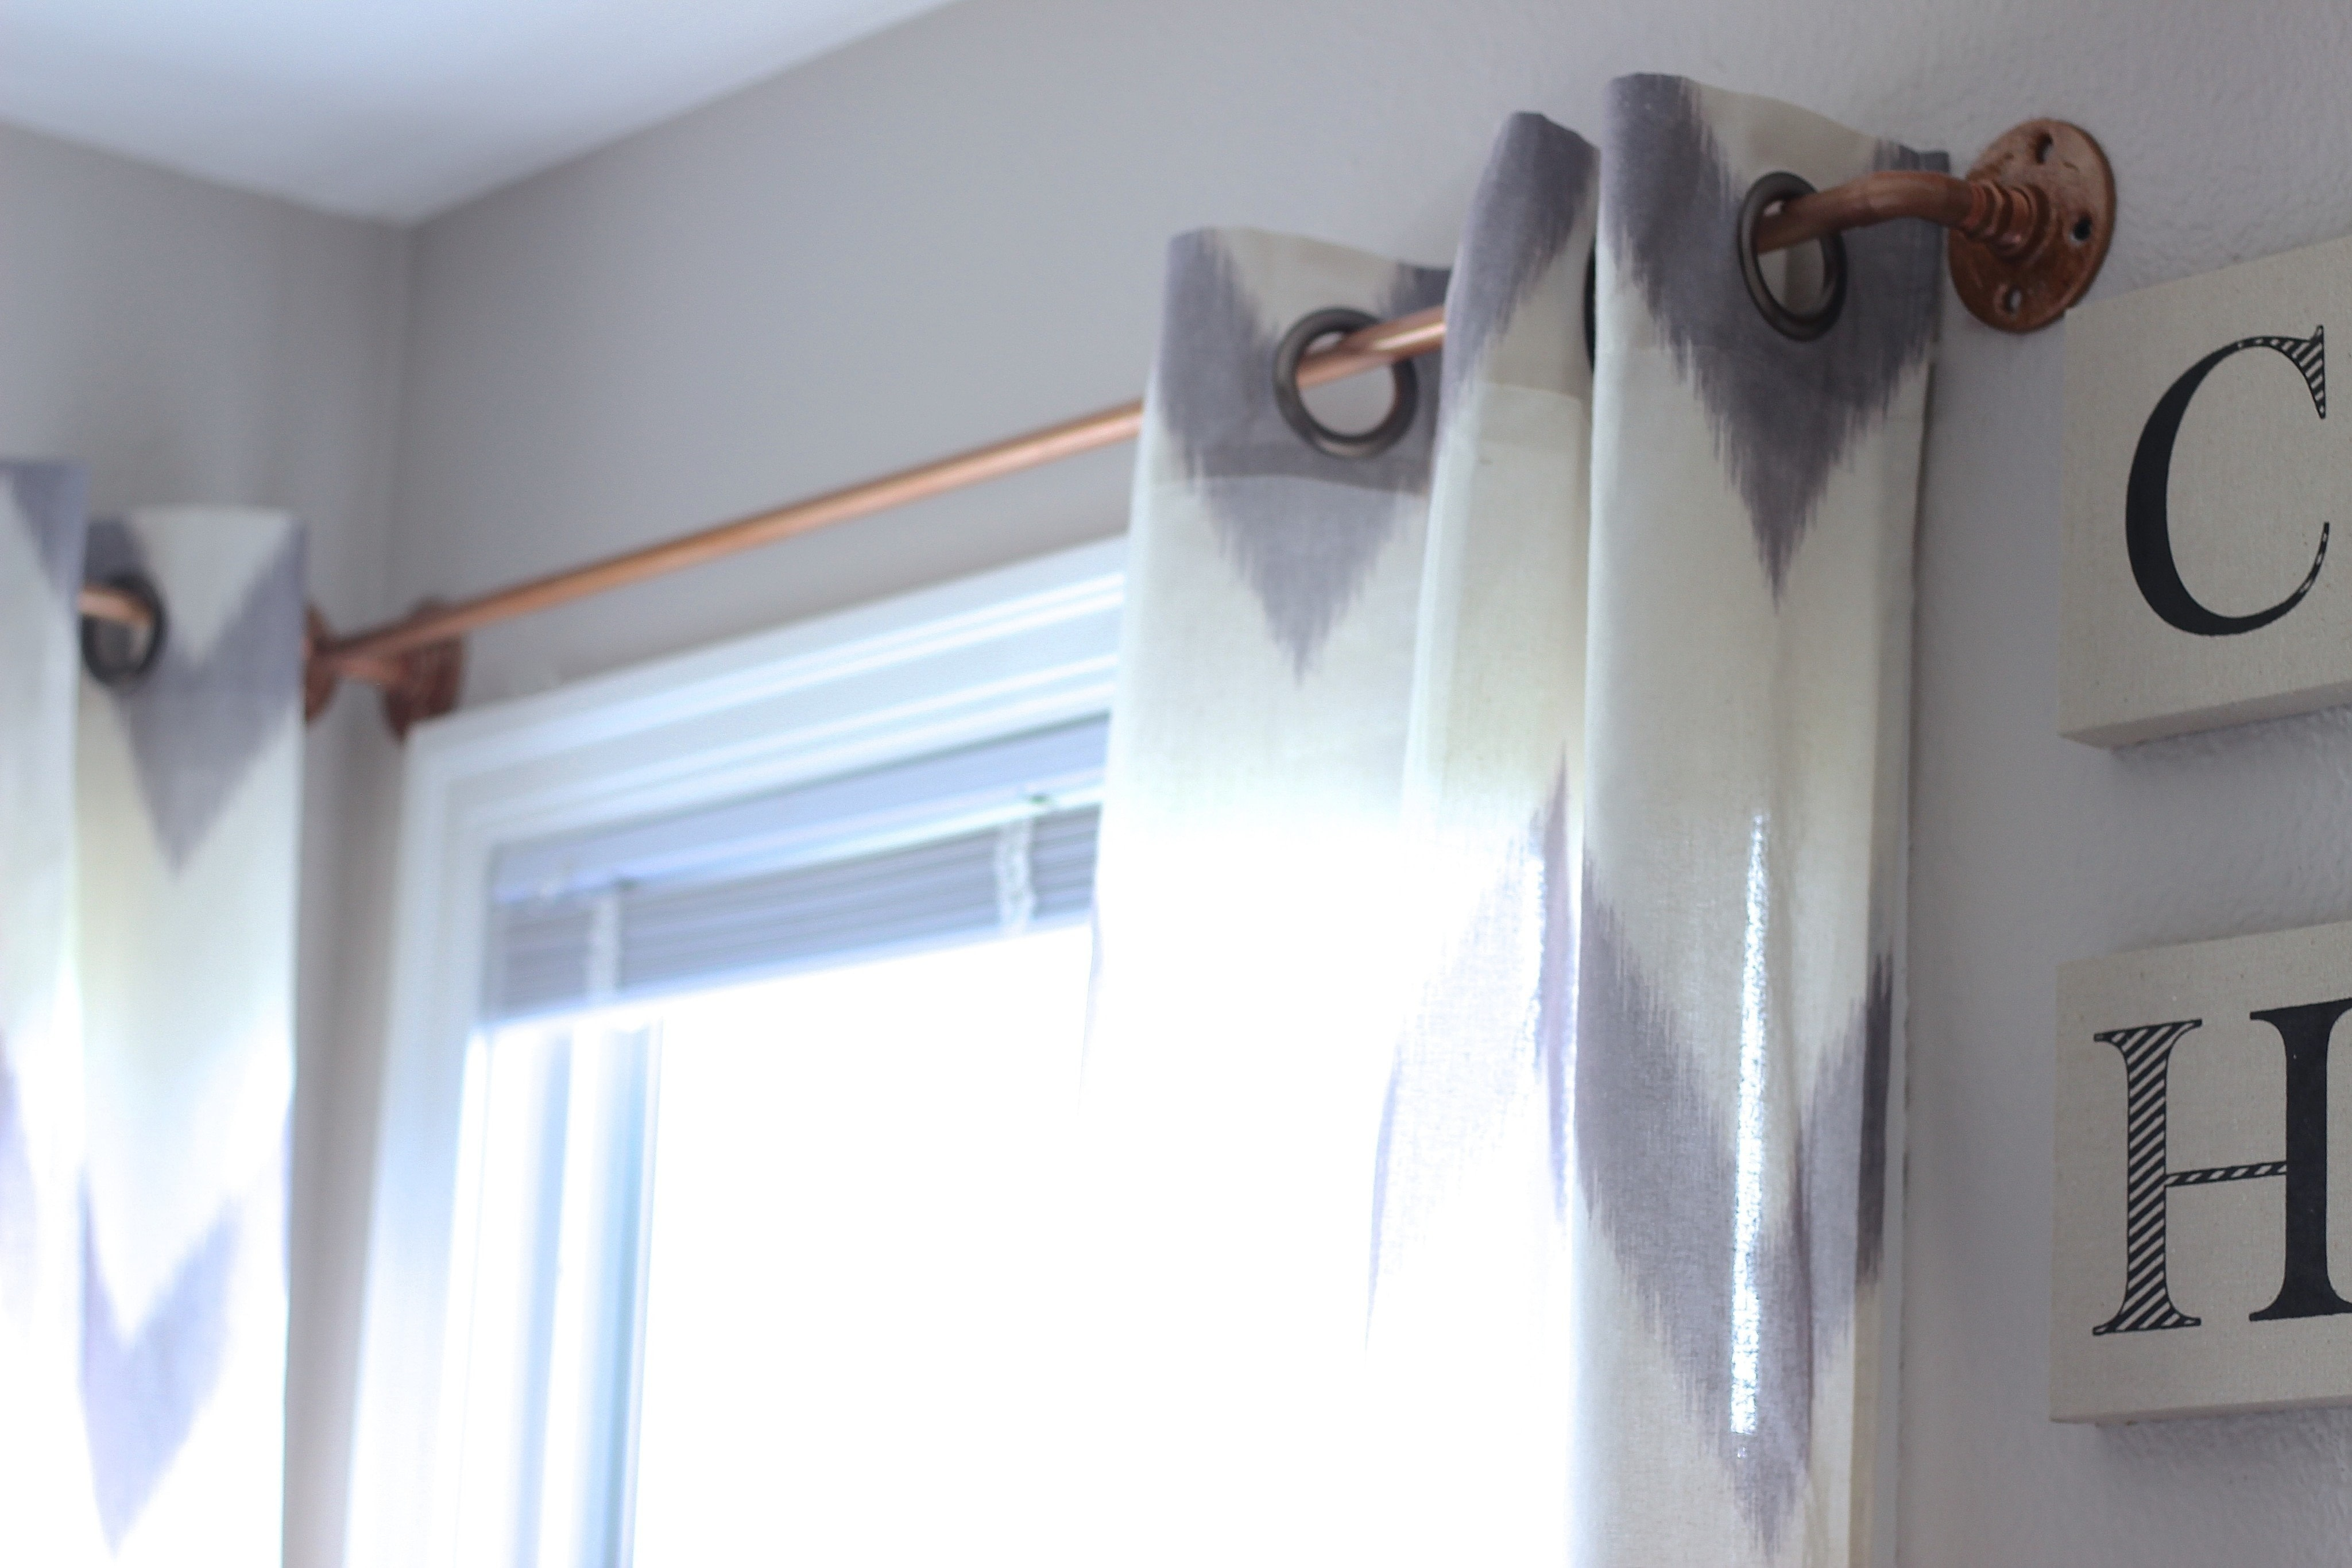 Diy Copper Curtain Rods How To Make A CurtainBlinds Home DIY On Cut Out Keep